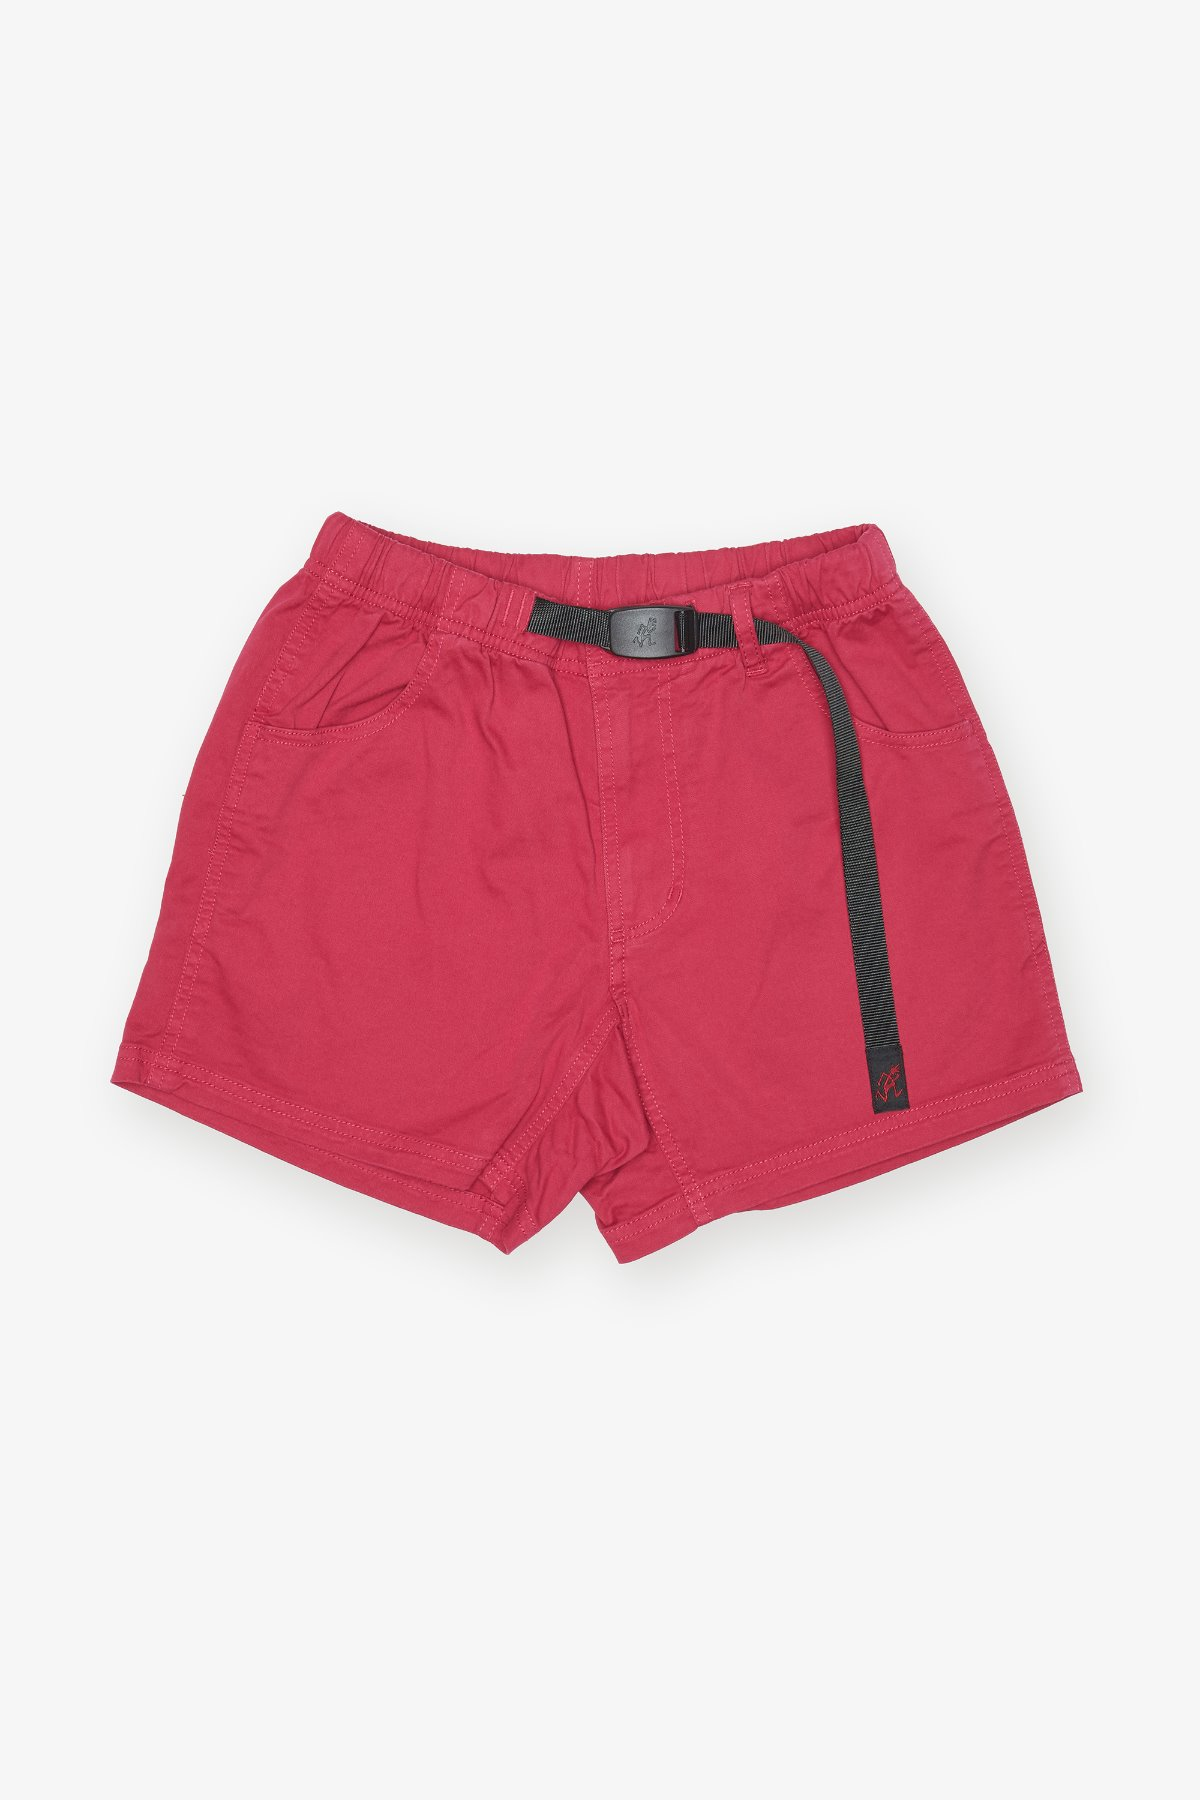 VERY SHORTS RASPBERRY